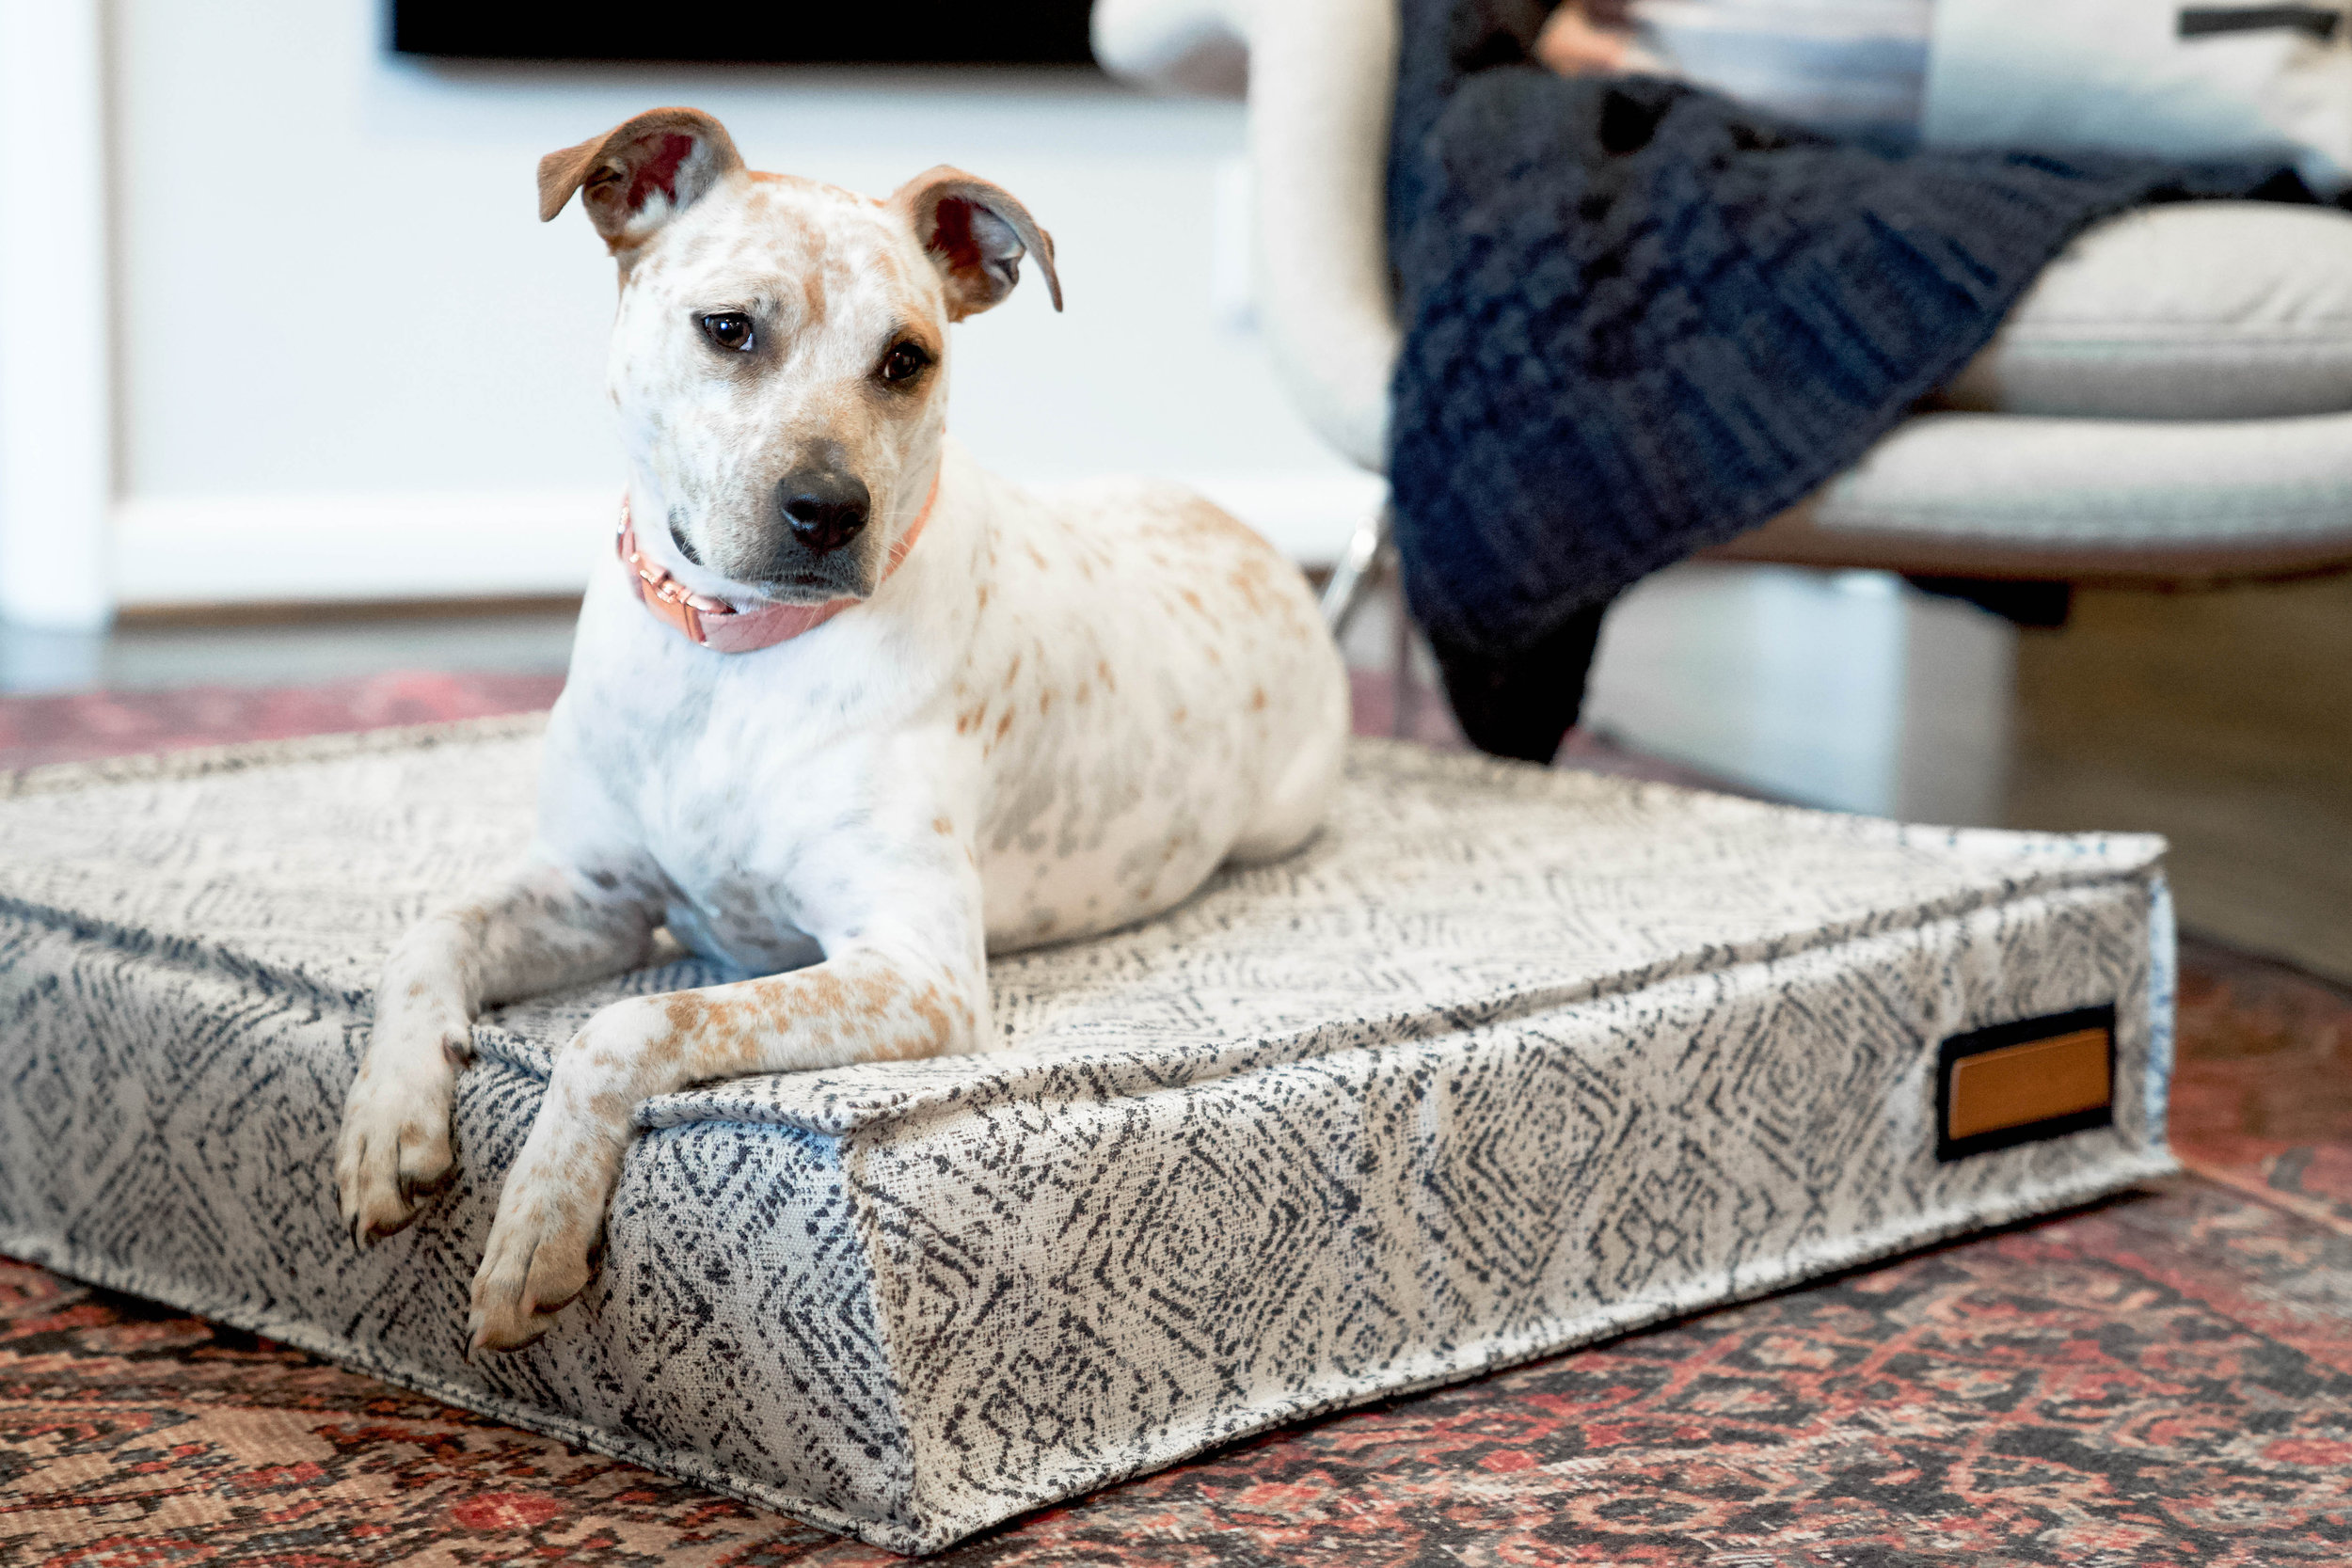 Lounger Beds - Does your pet stretch out like a flying squirrel when they sleep? Whether on their tummy, side or back, if your dog likes to stretch out when they relax the Lounger is the best bed for them. The Lounger Bed comes in small, medium, large, and x-large sizes and with a generous 6 inch foam there is not a more comfortable place for a long nap. The Lounger comes in two insert options: our standard blow fill, built to retain its loft, never clumping or flattening AND a supportive orthopedic foam for pets who need a bit more joint support or those that may have a little more grey around the muzzle.